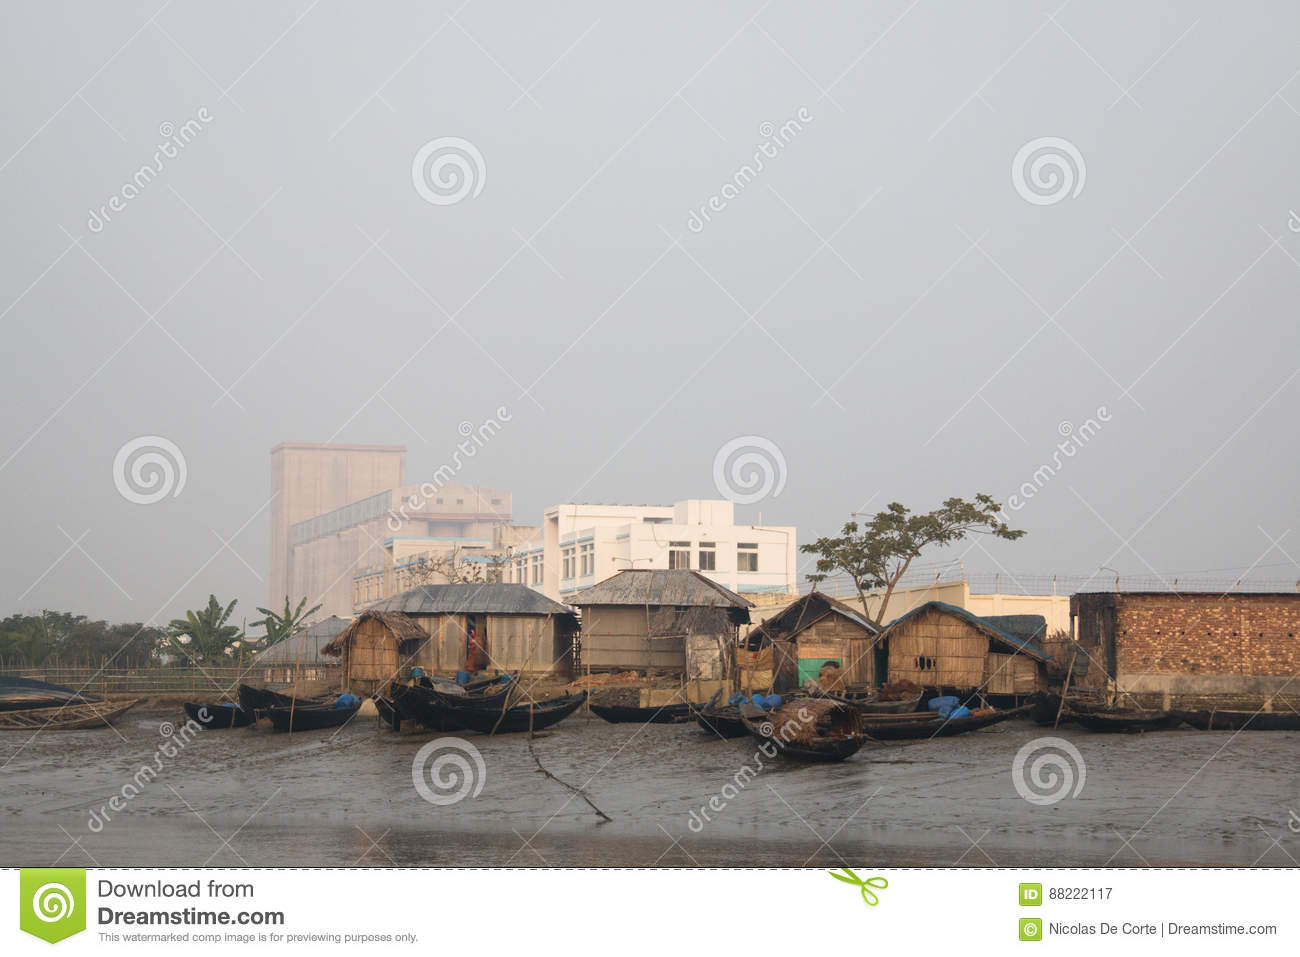 Fishing Village With Factory In Bangladesh Stock Image - Image of